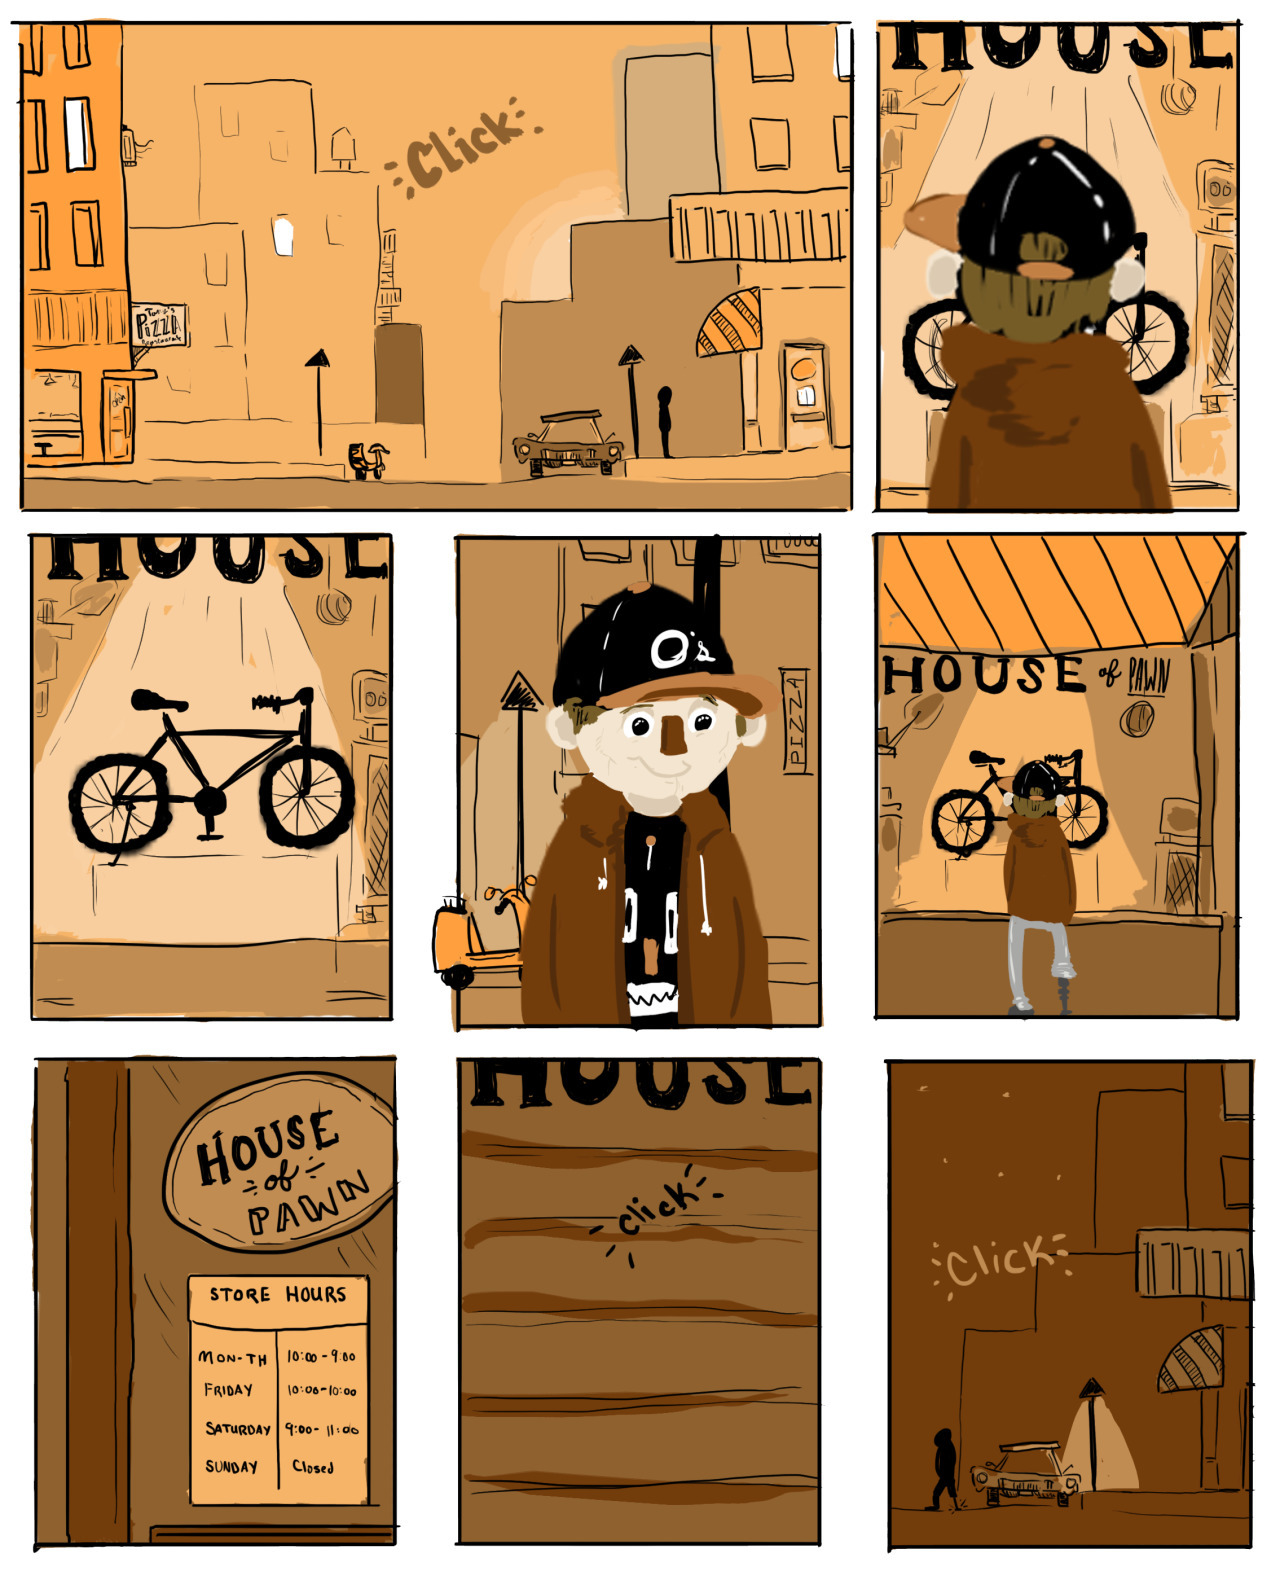 single page comic short story a - cjwords | ello